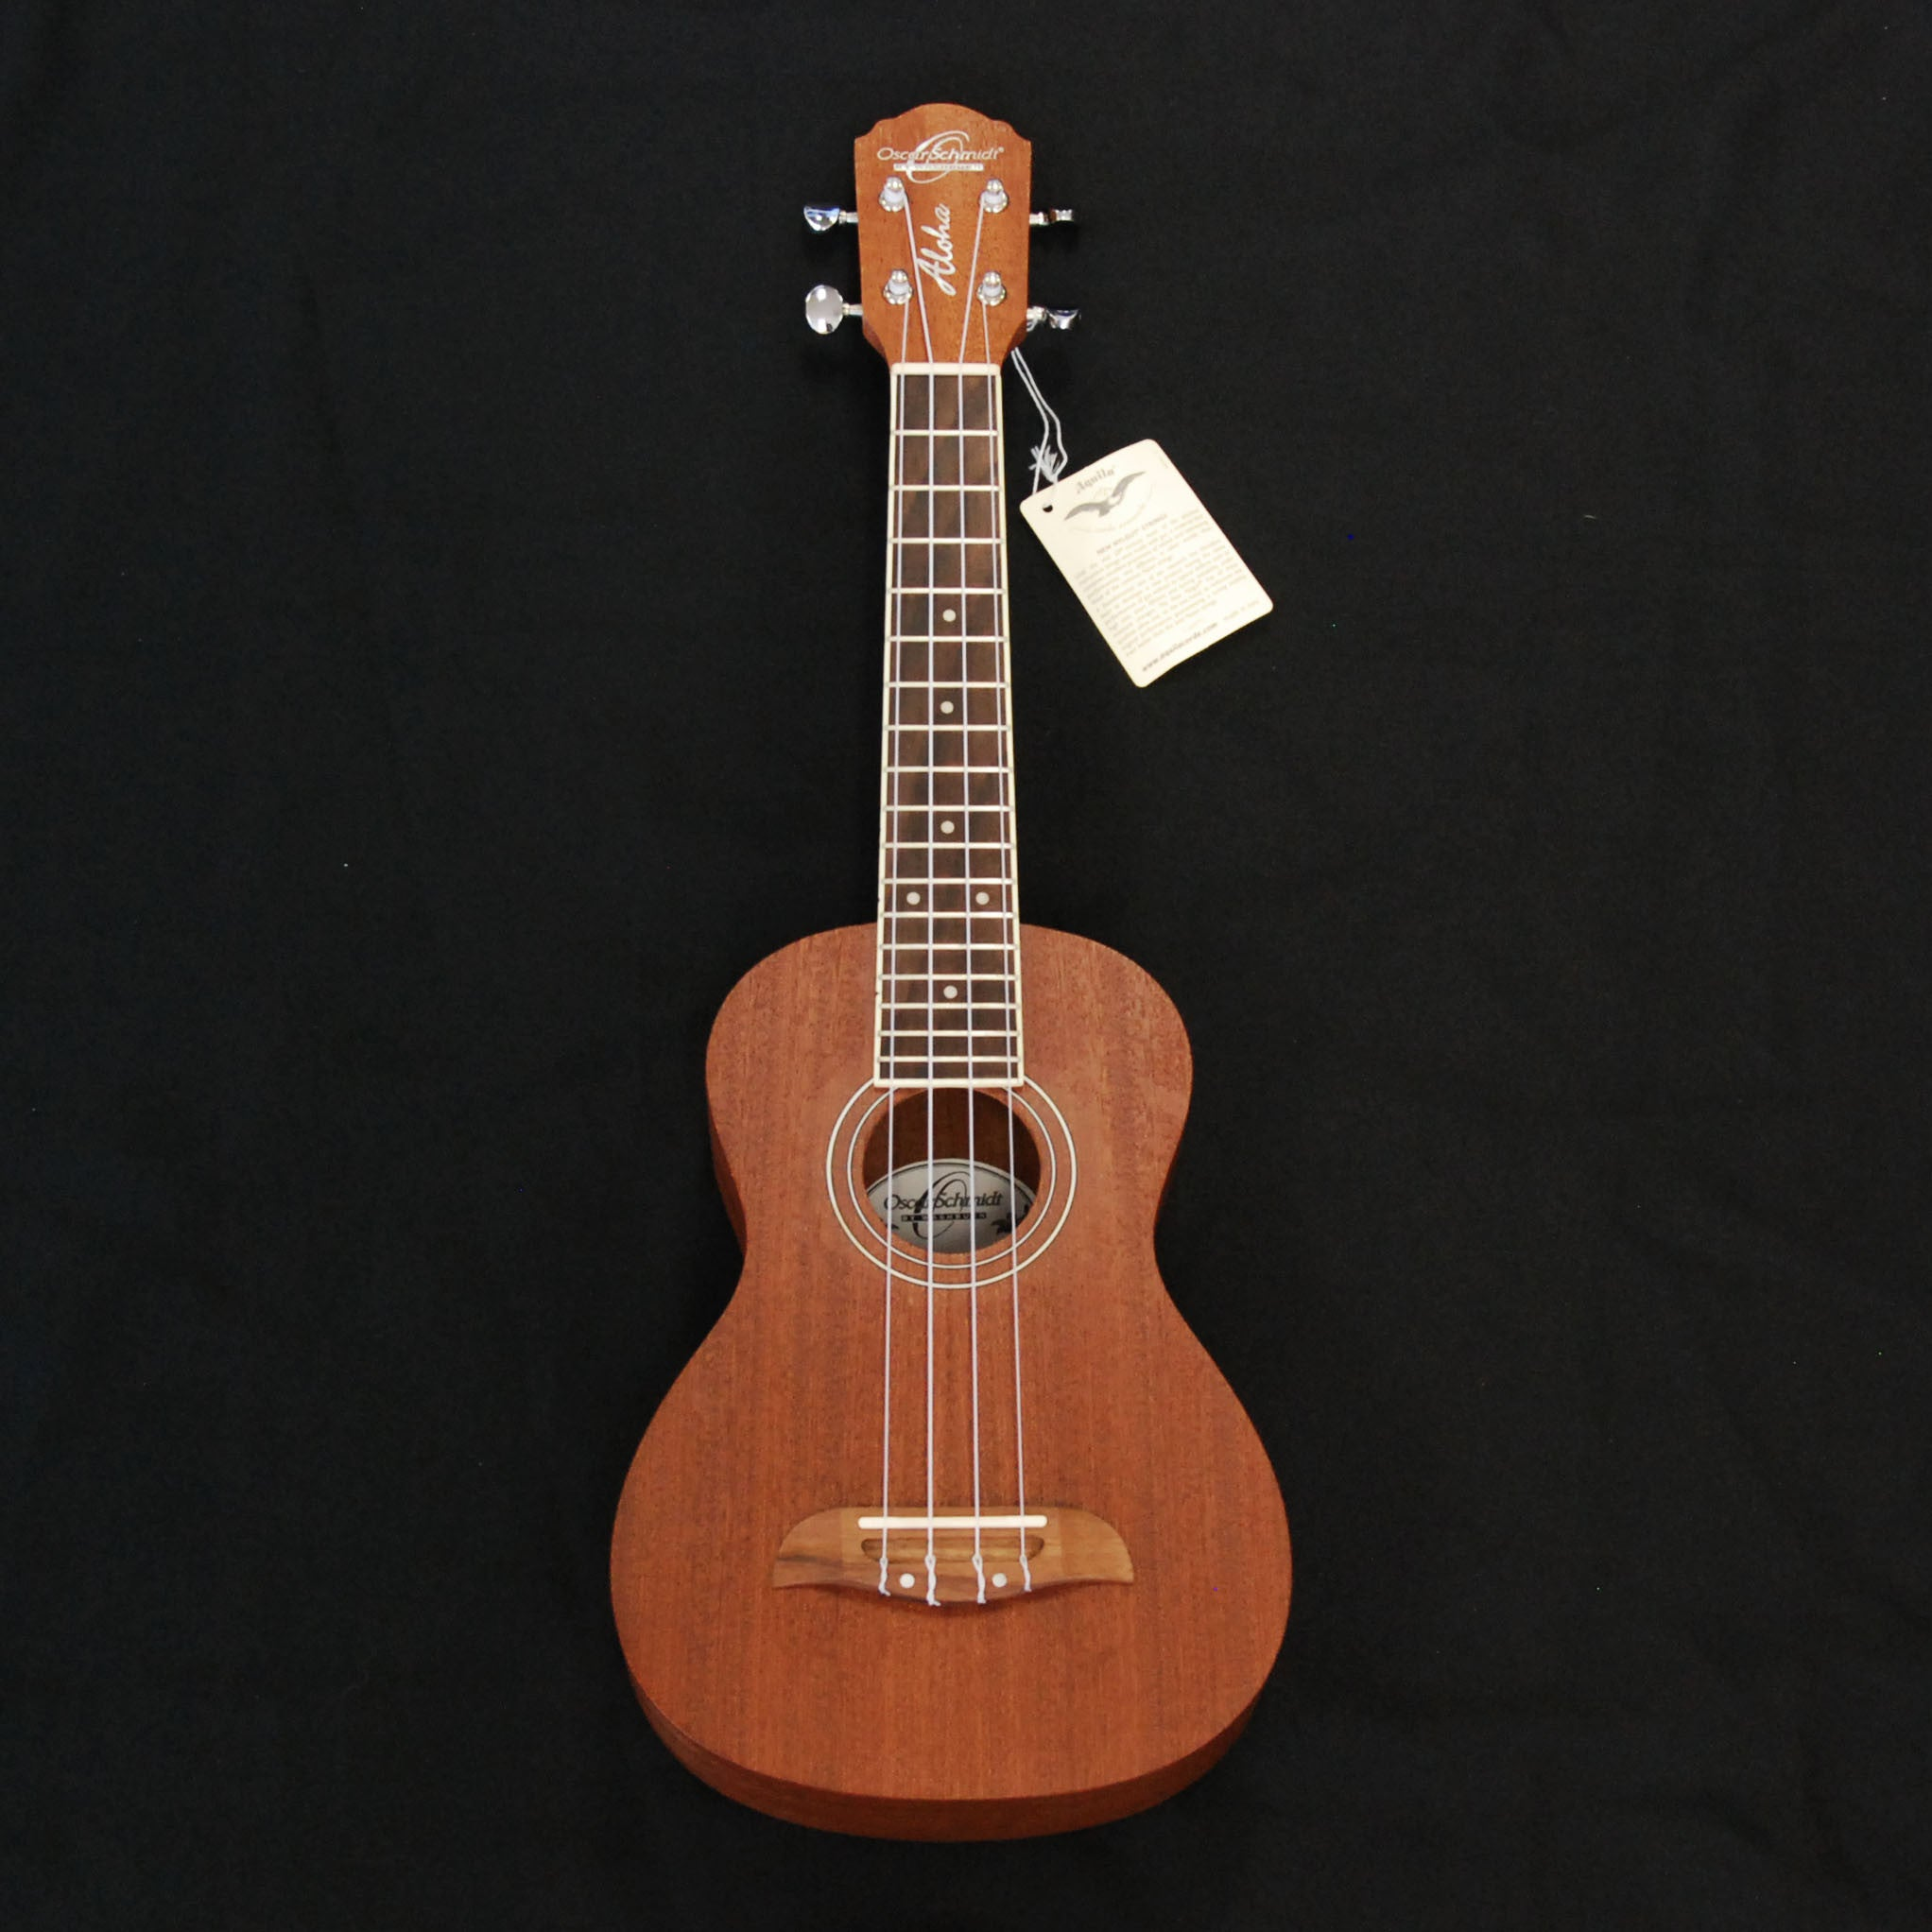 Shop online for Oscar Schmidt OU2 Concert Ukulele Mahogany today. Now available for purchase from Midlothian Music of Orland Park, Illinois, USA